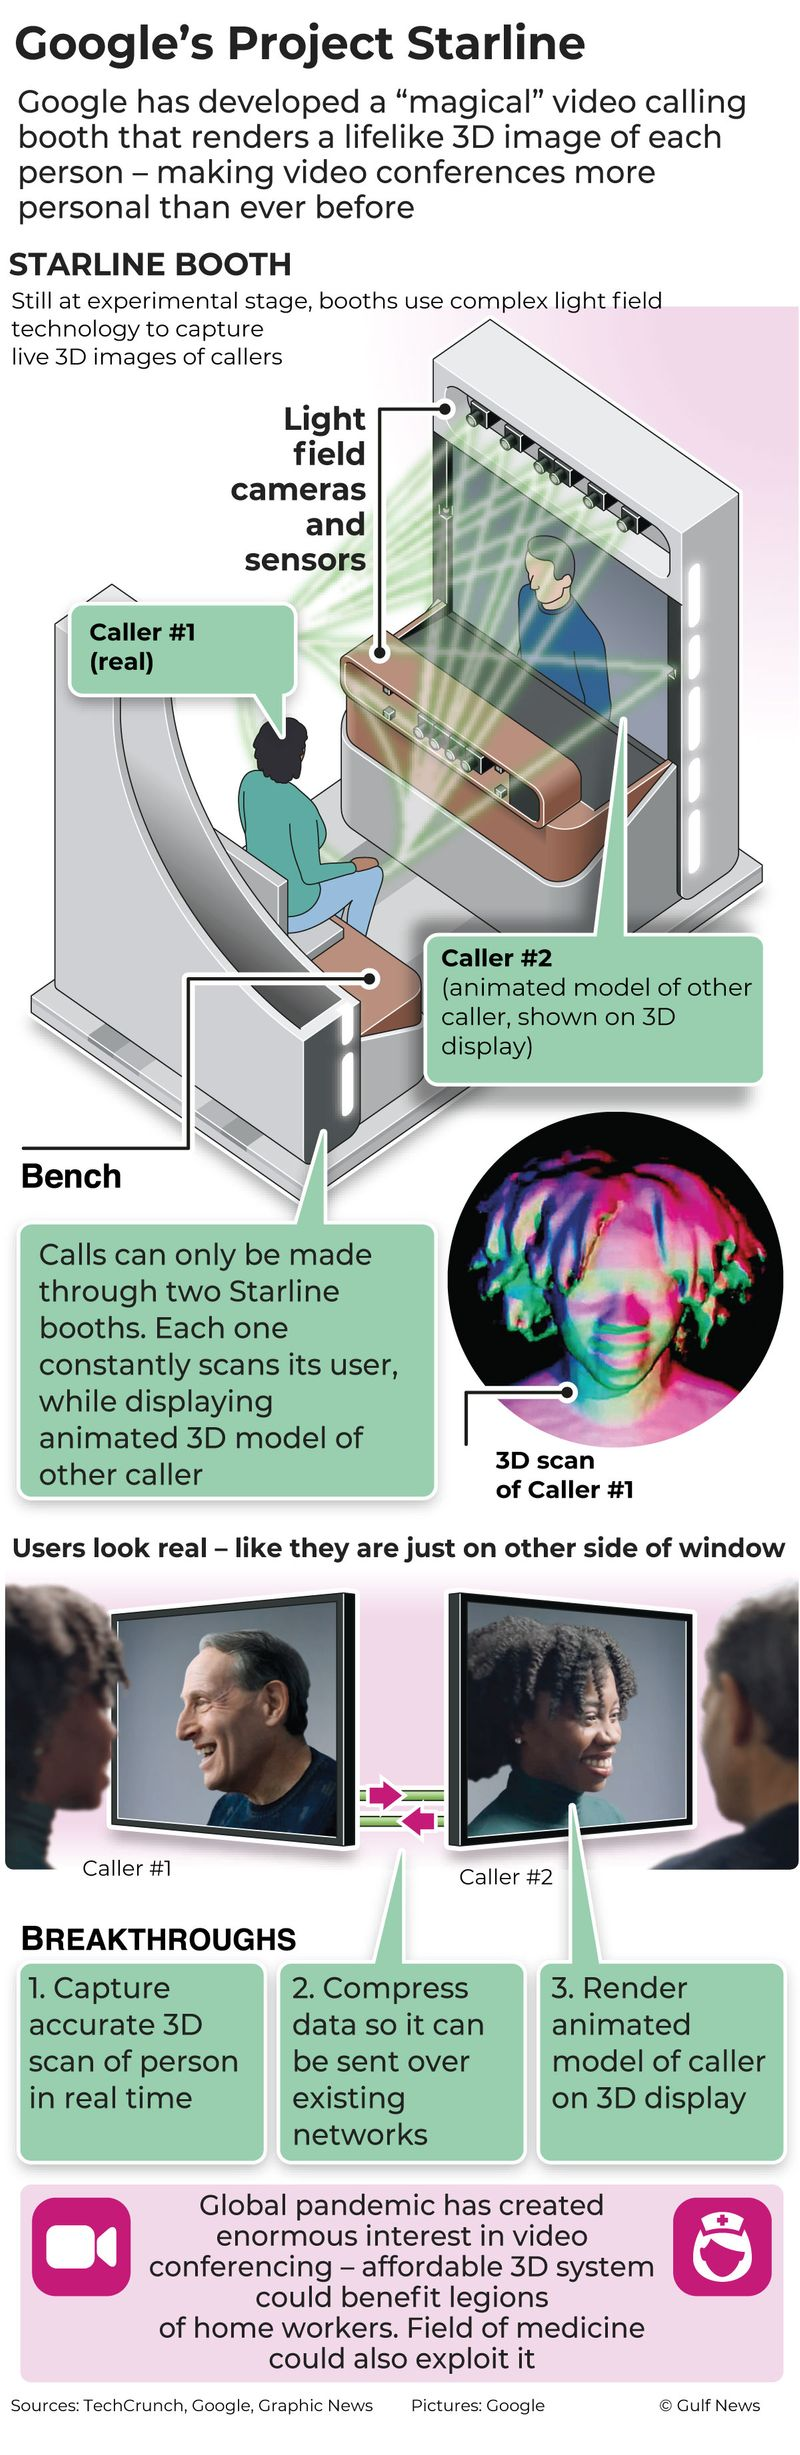 Infographic: How Google made a 3D video calling booth